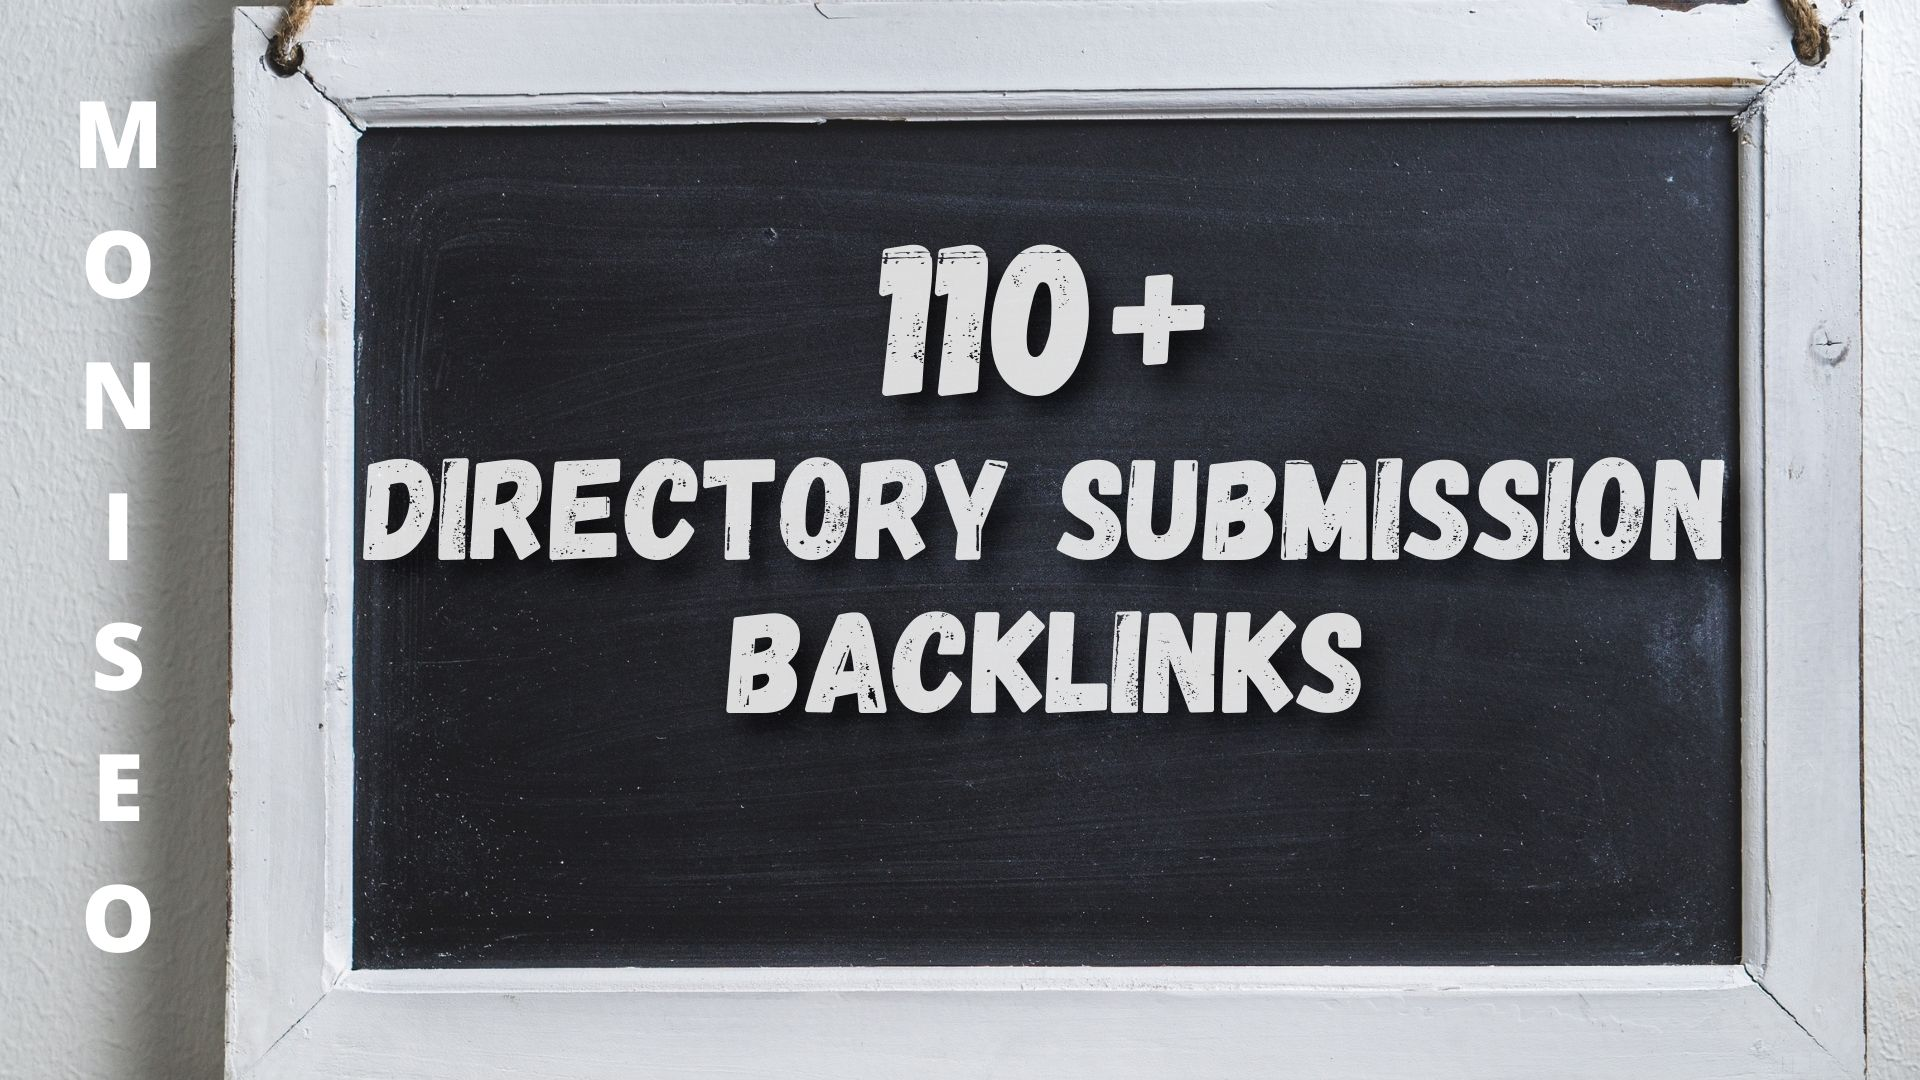 110+ Directory Submission SEO Verified backlinks